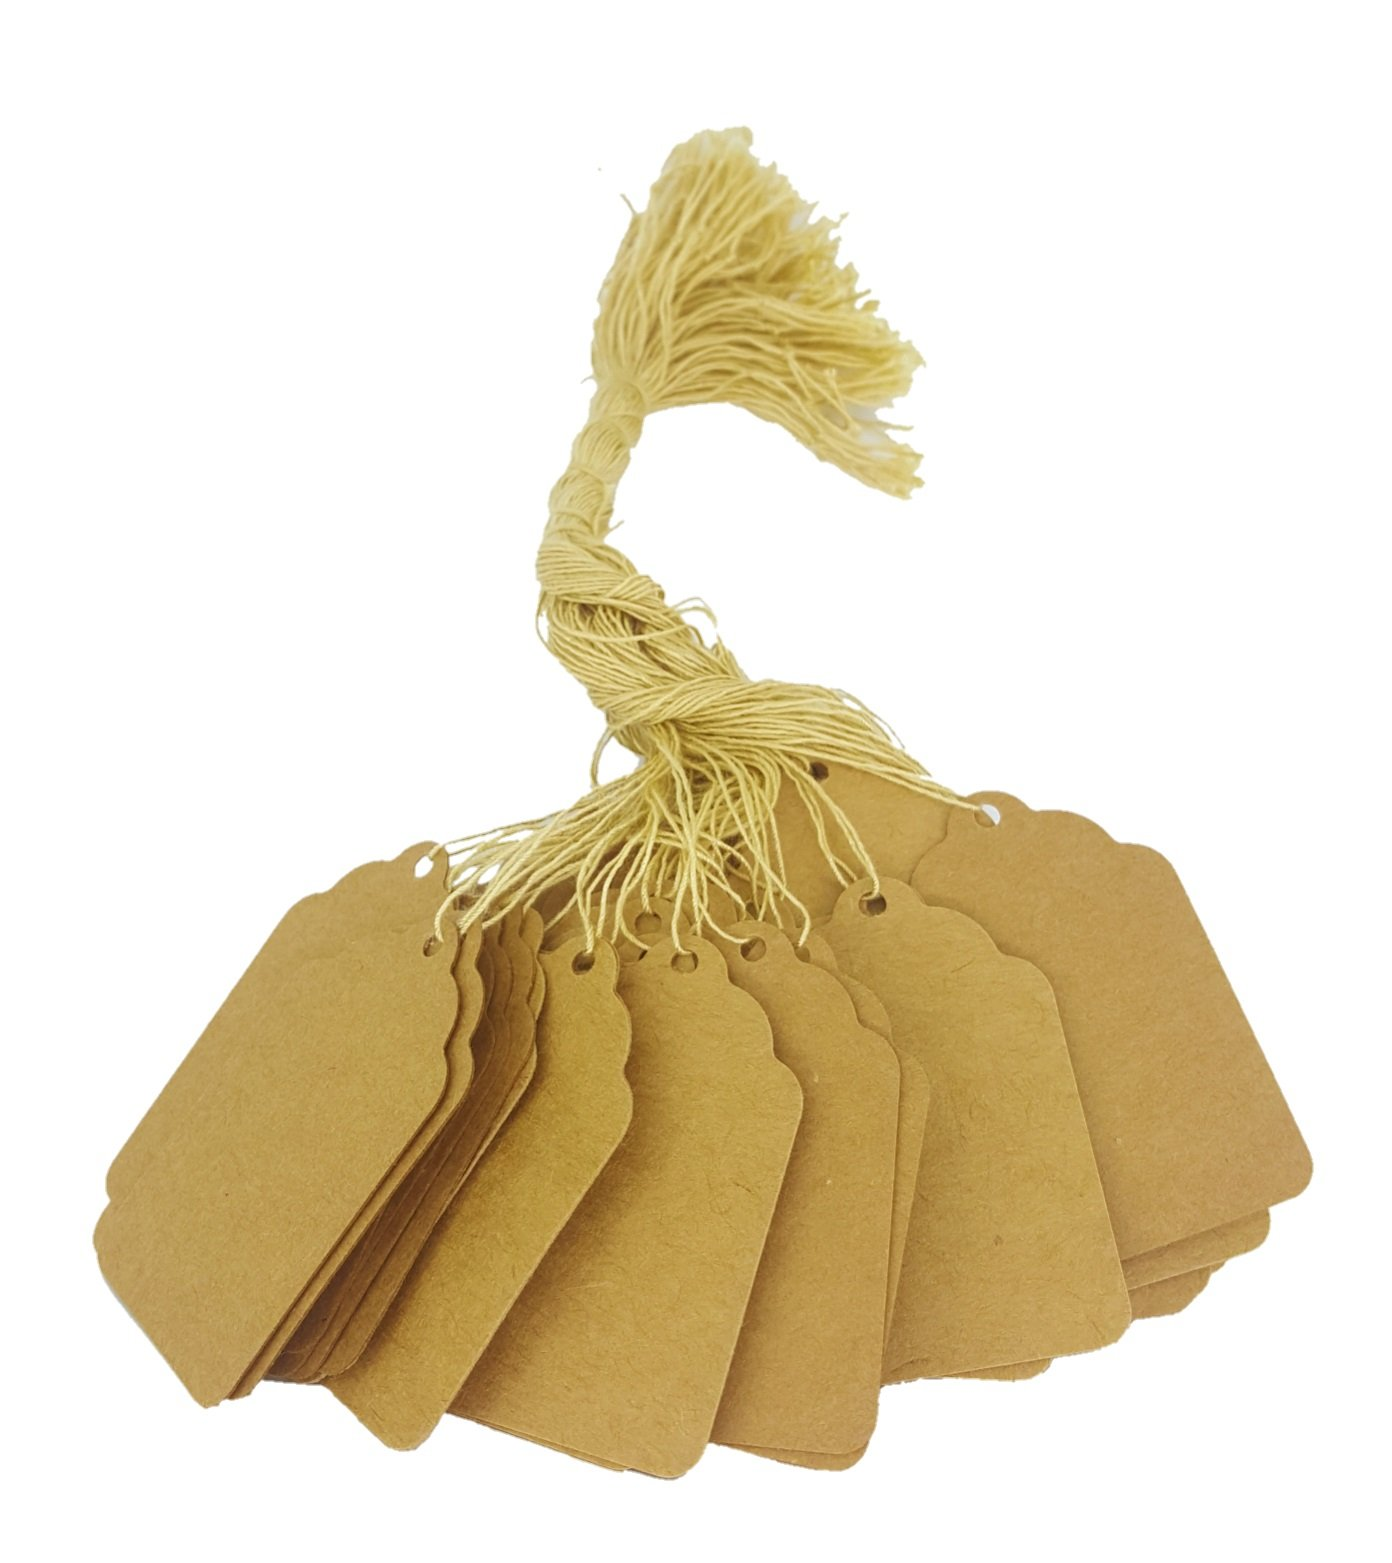 100 Pcs of Natural Kraft Paper String Tags, Price Tags, Elegant String Tags Perfect for Gifts, Promotions, Events, or Boutiques (2 3/16'' X 1 7/16'', Natural Kraft)